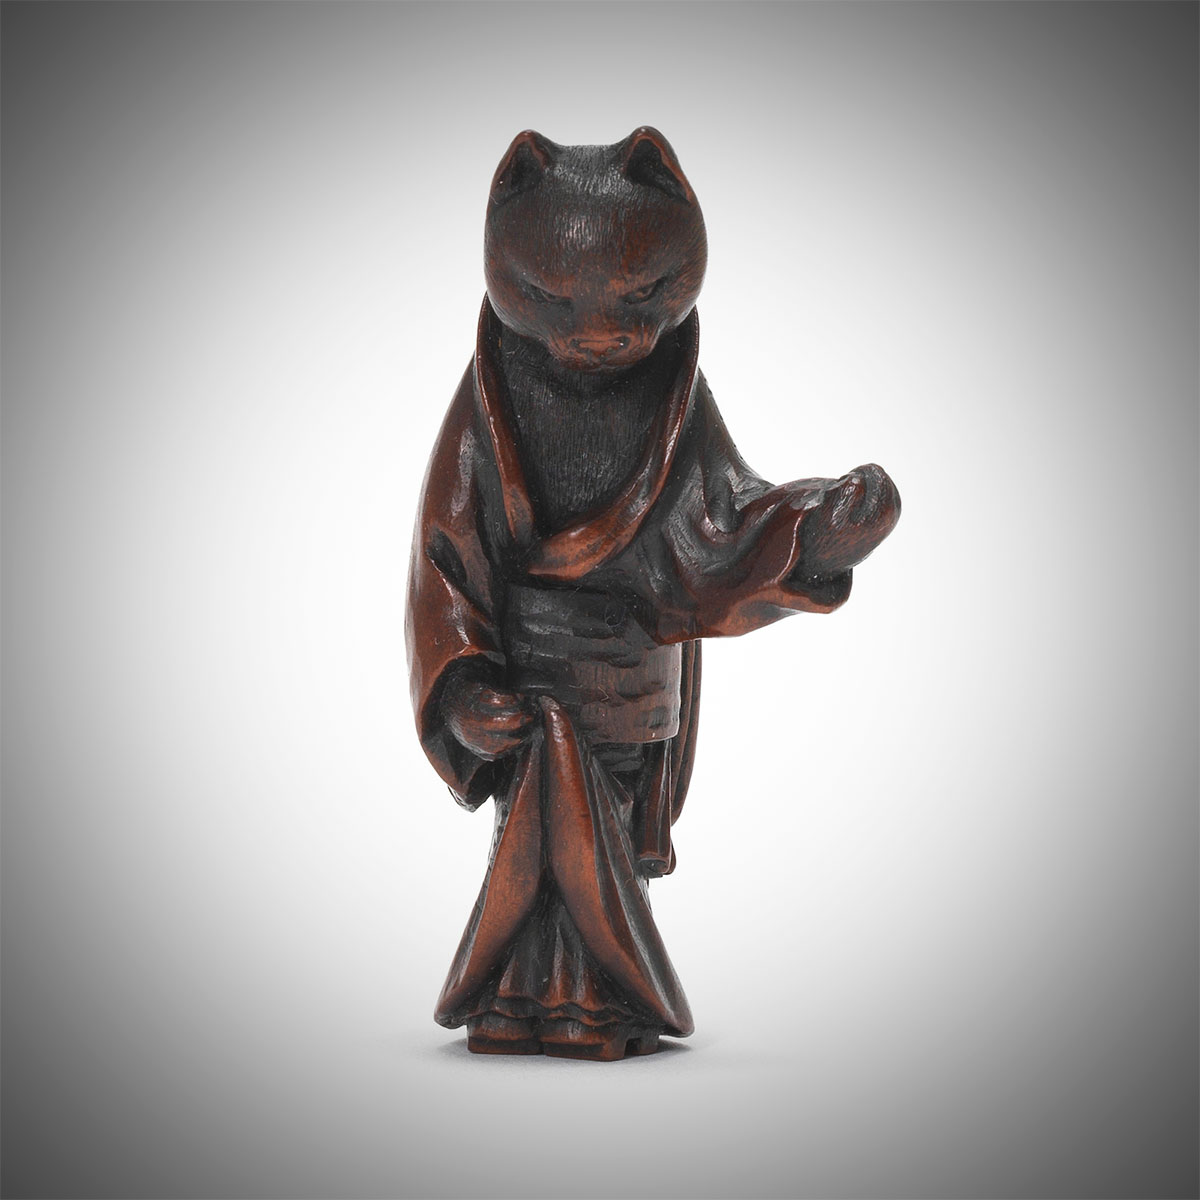 Dark Stained Wood Netsuke of a Cat Geisha by Ittan, MR3345_v1-2